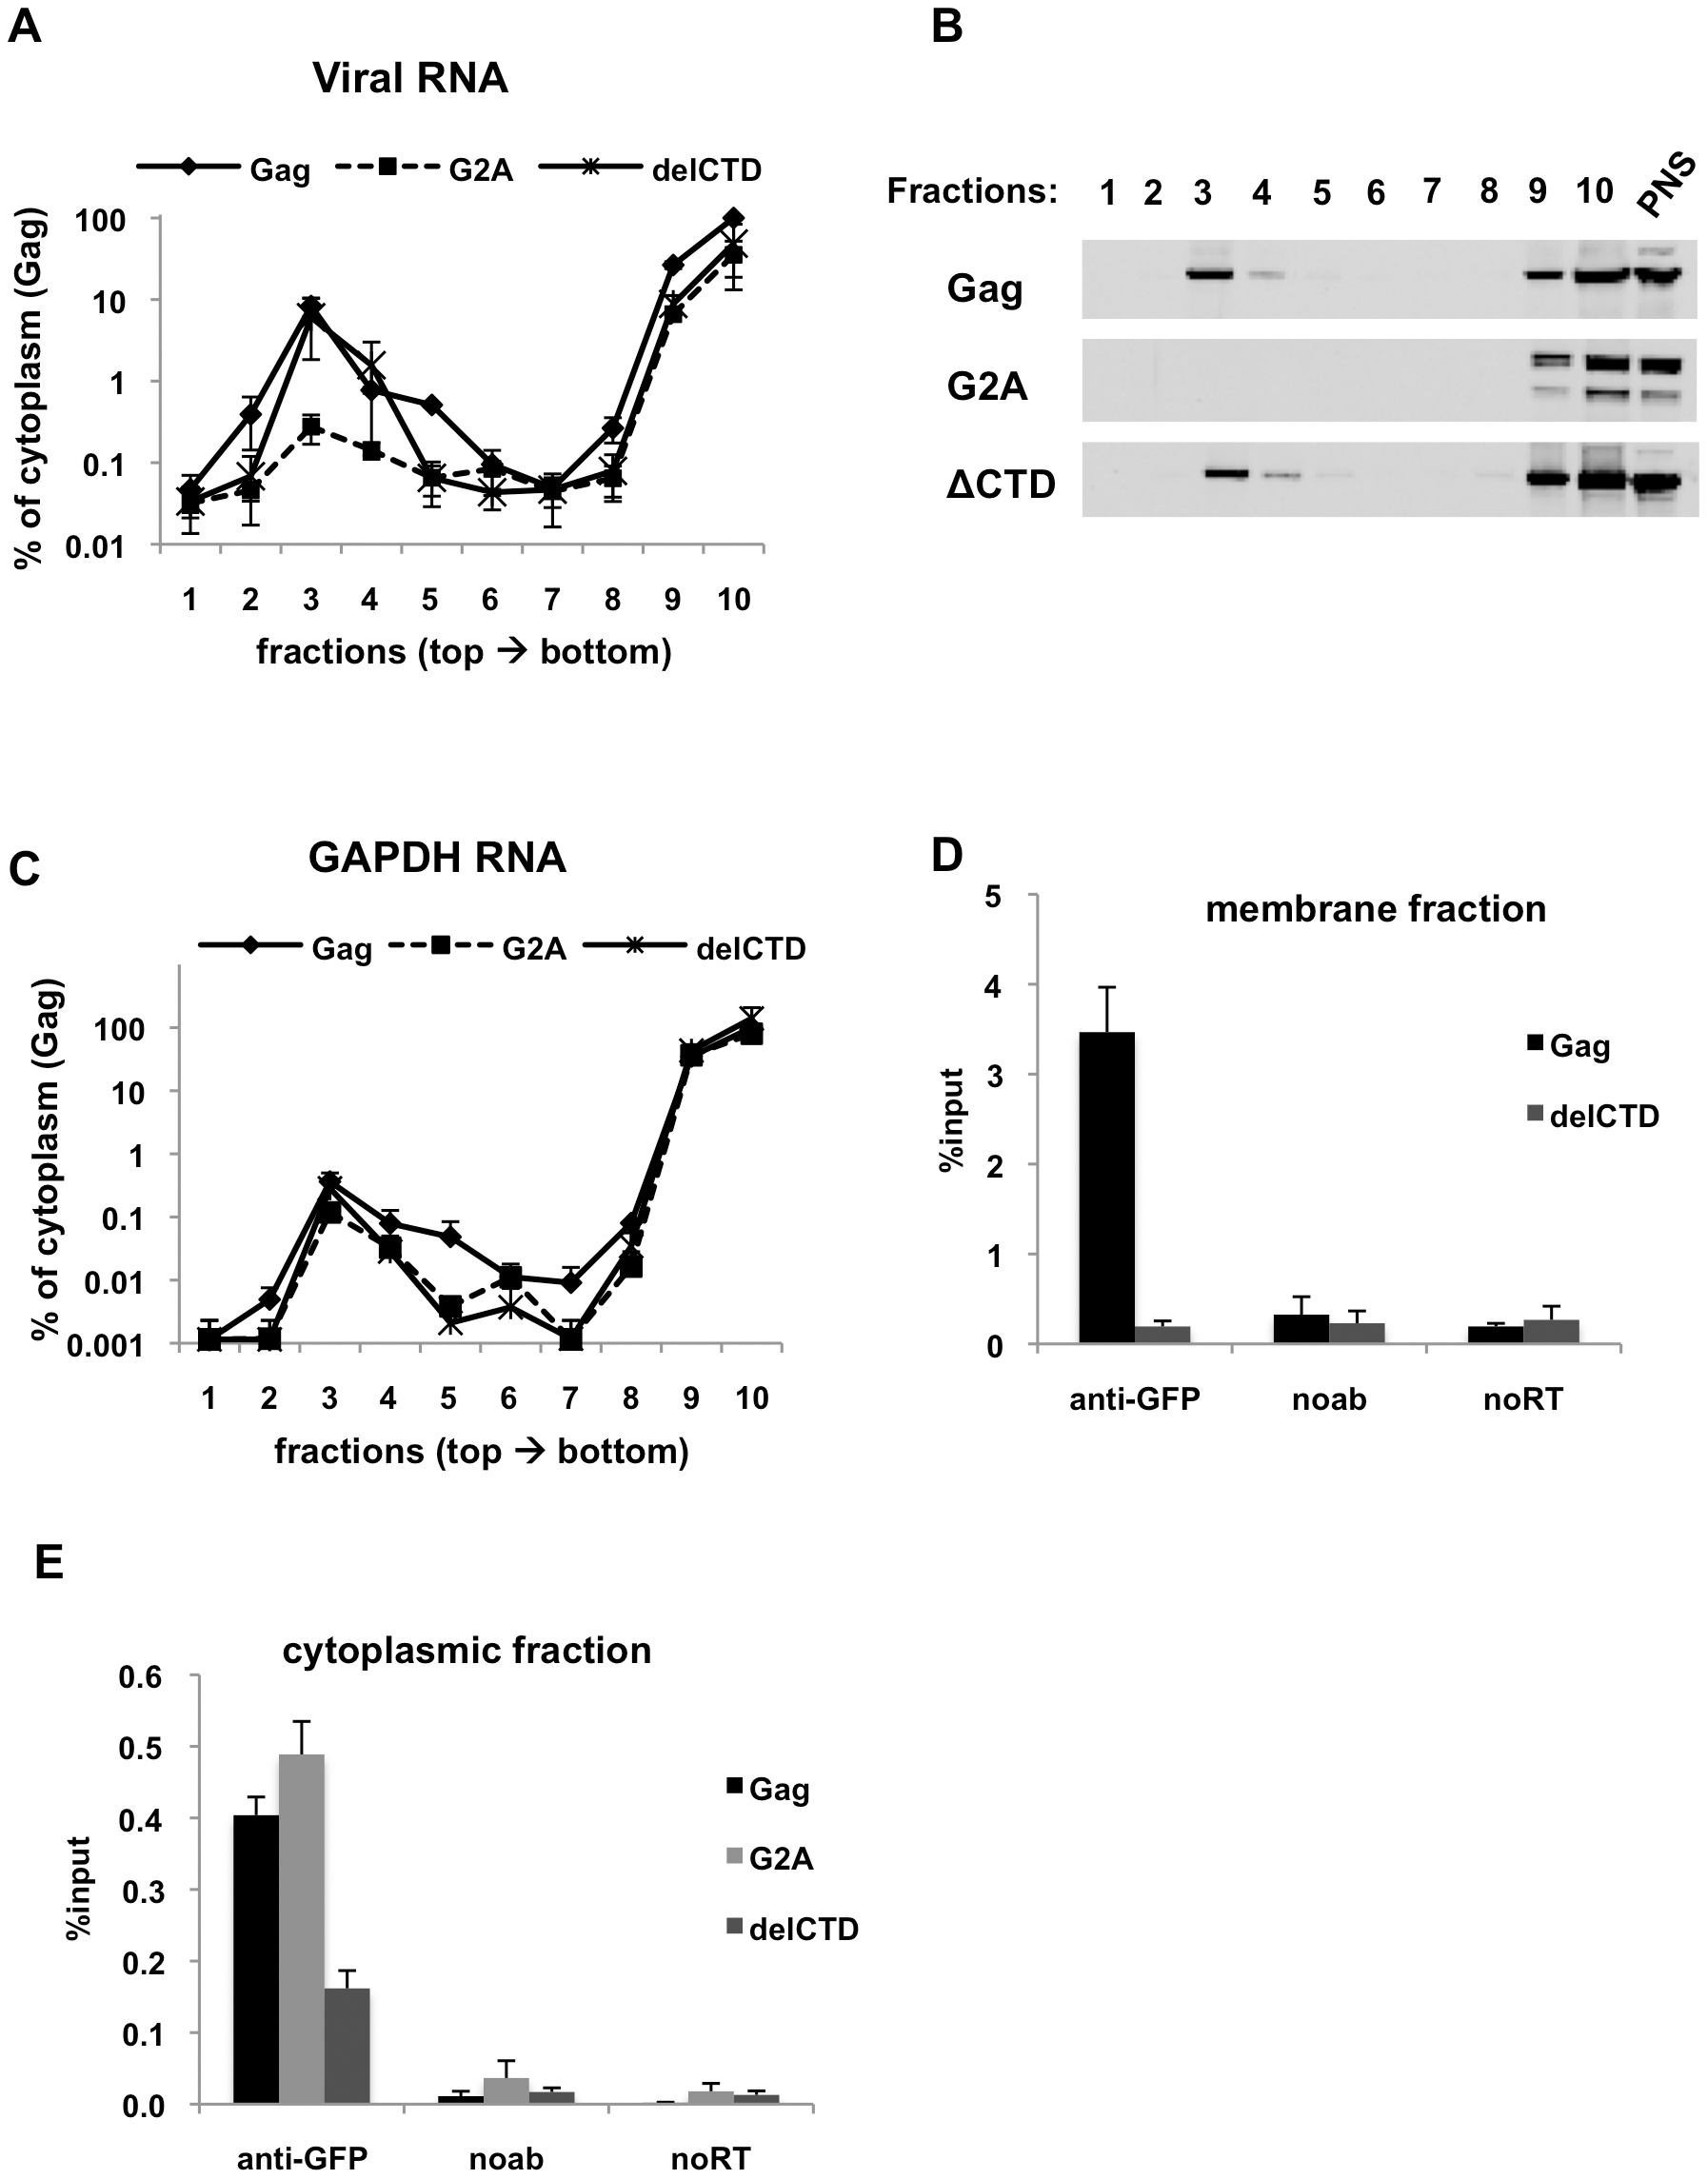 Immunoprecipitation of HIV genomic RNA from membrane and cytoplasmic fractions by Gag, G2A-Gag and Gag-delCTD.